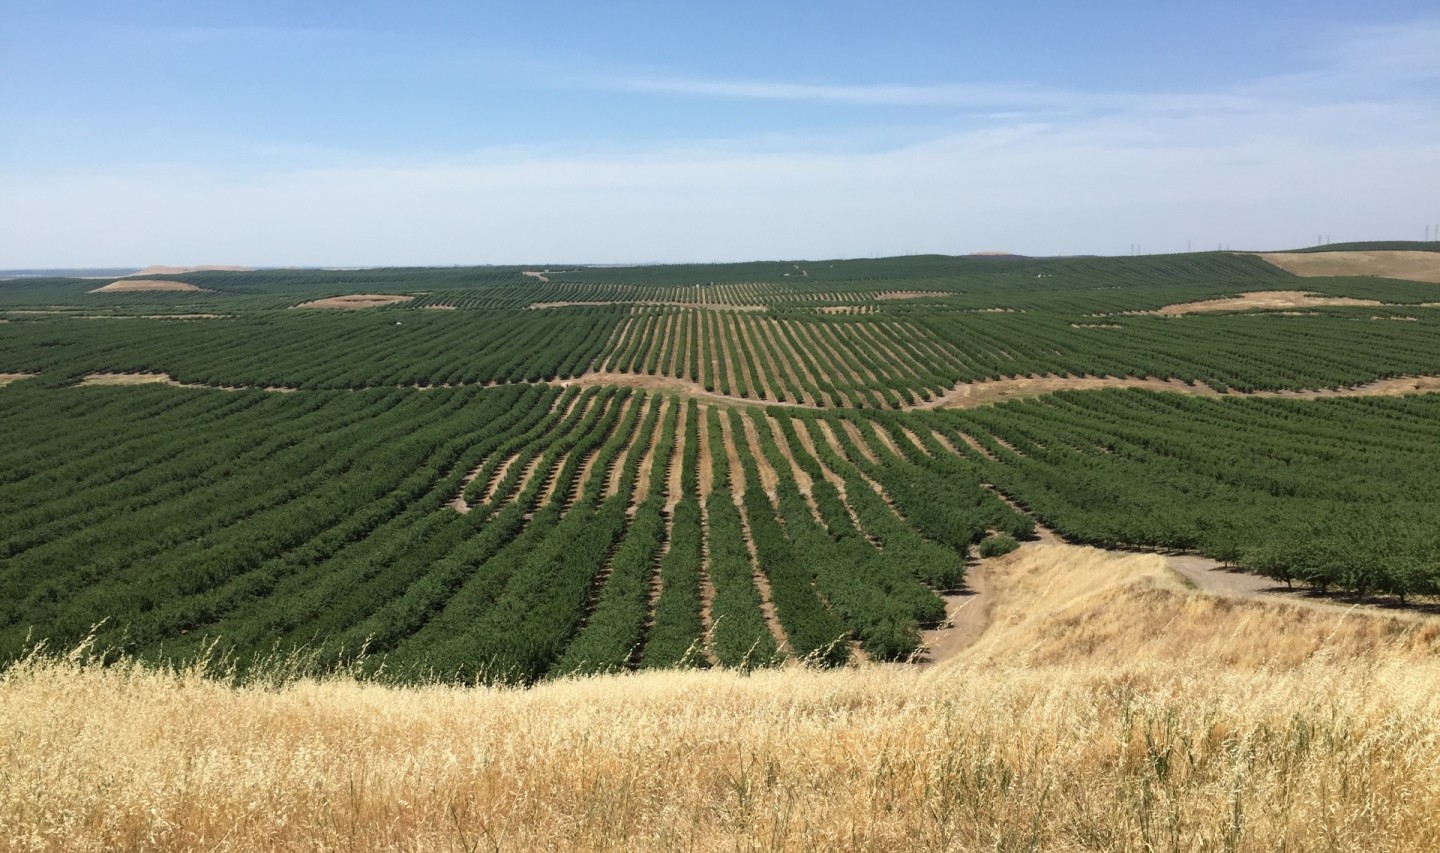 Almond orchards are proliferating in the Stanislaus County foothills, land long used for cattle grazing. Sasha Khokha/KQED